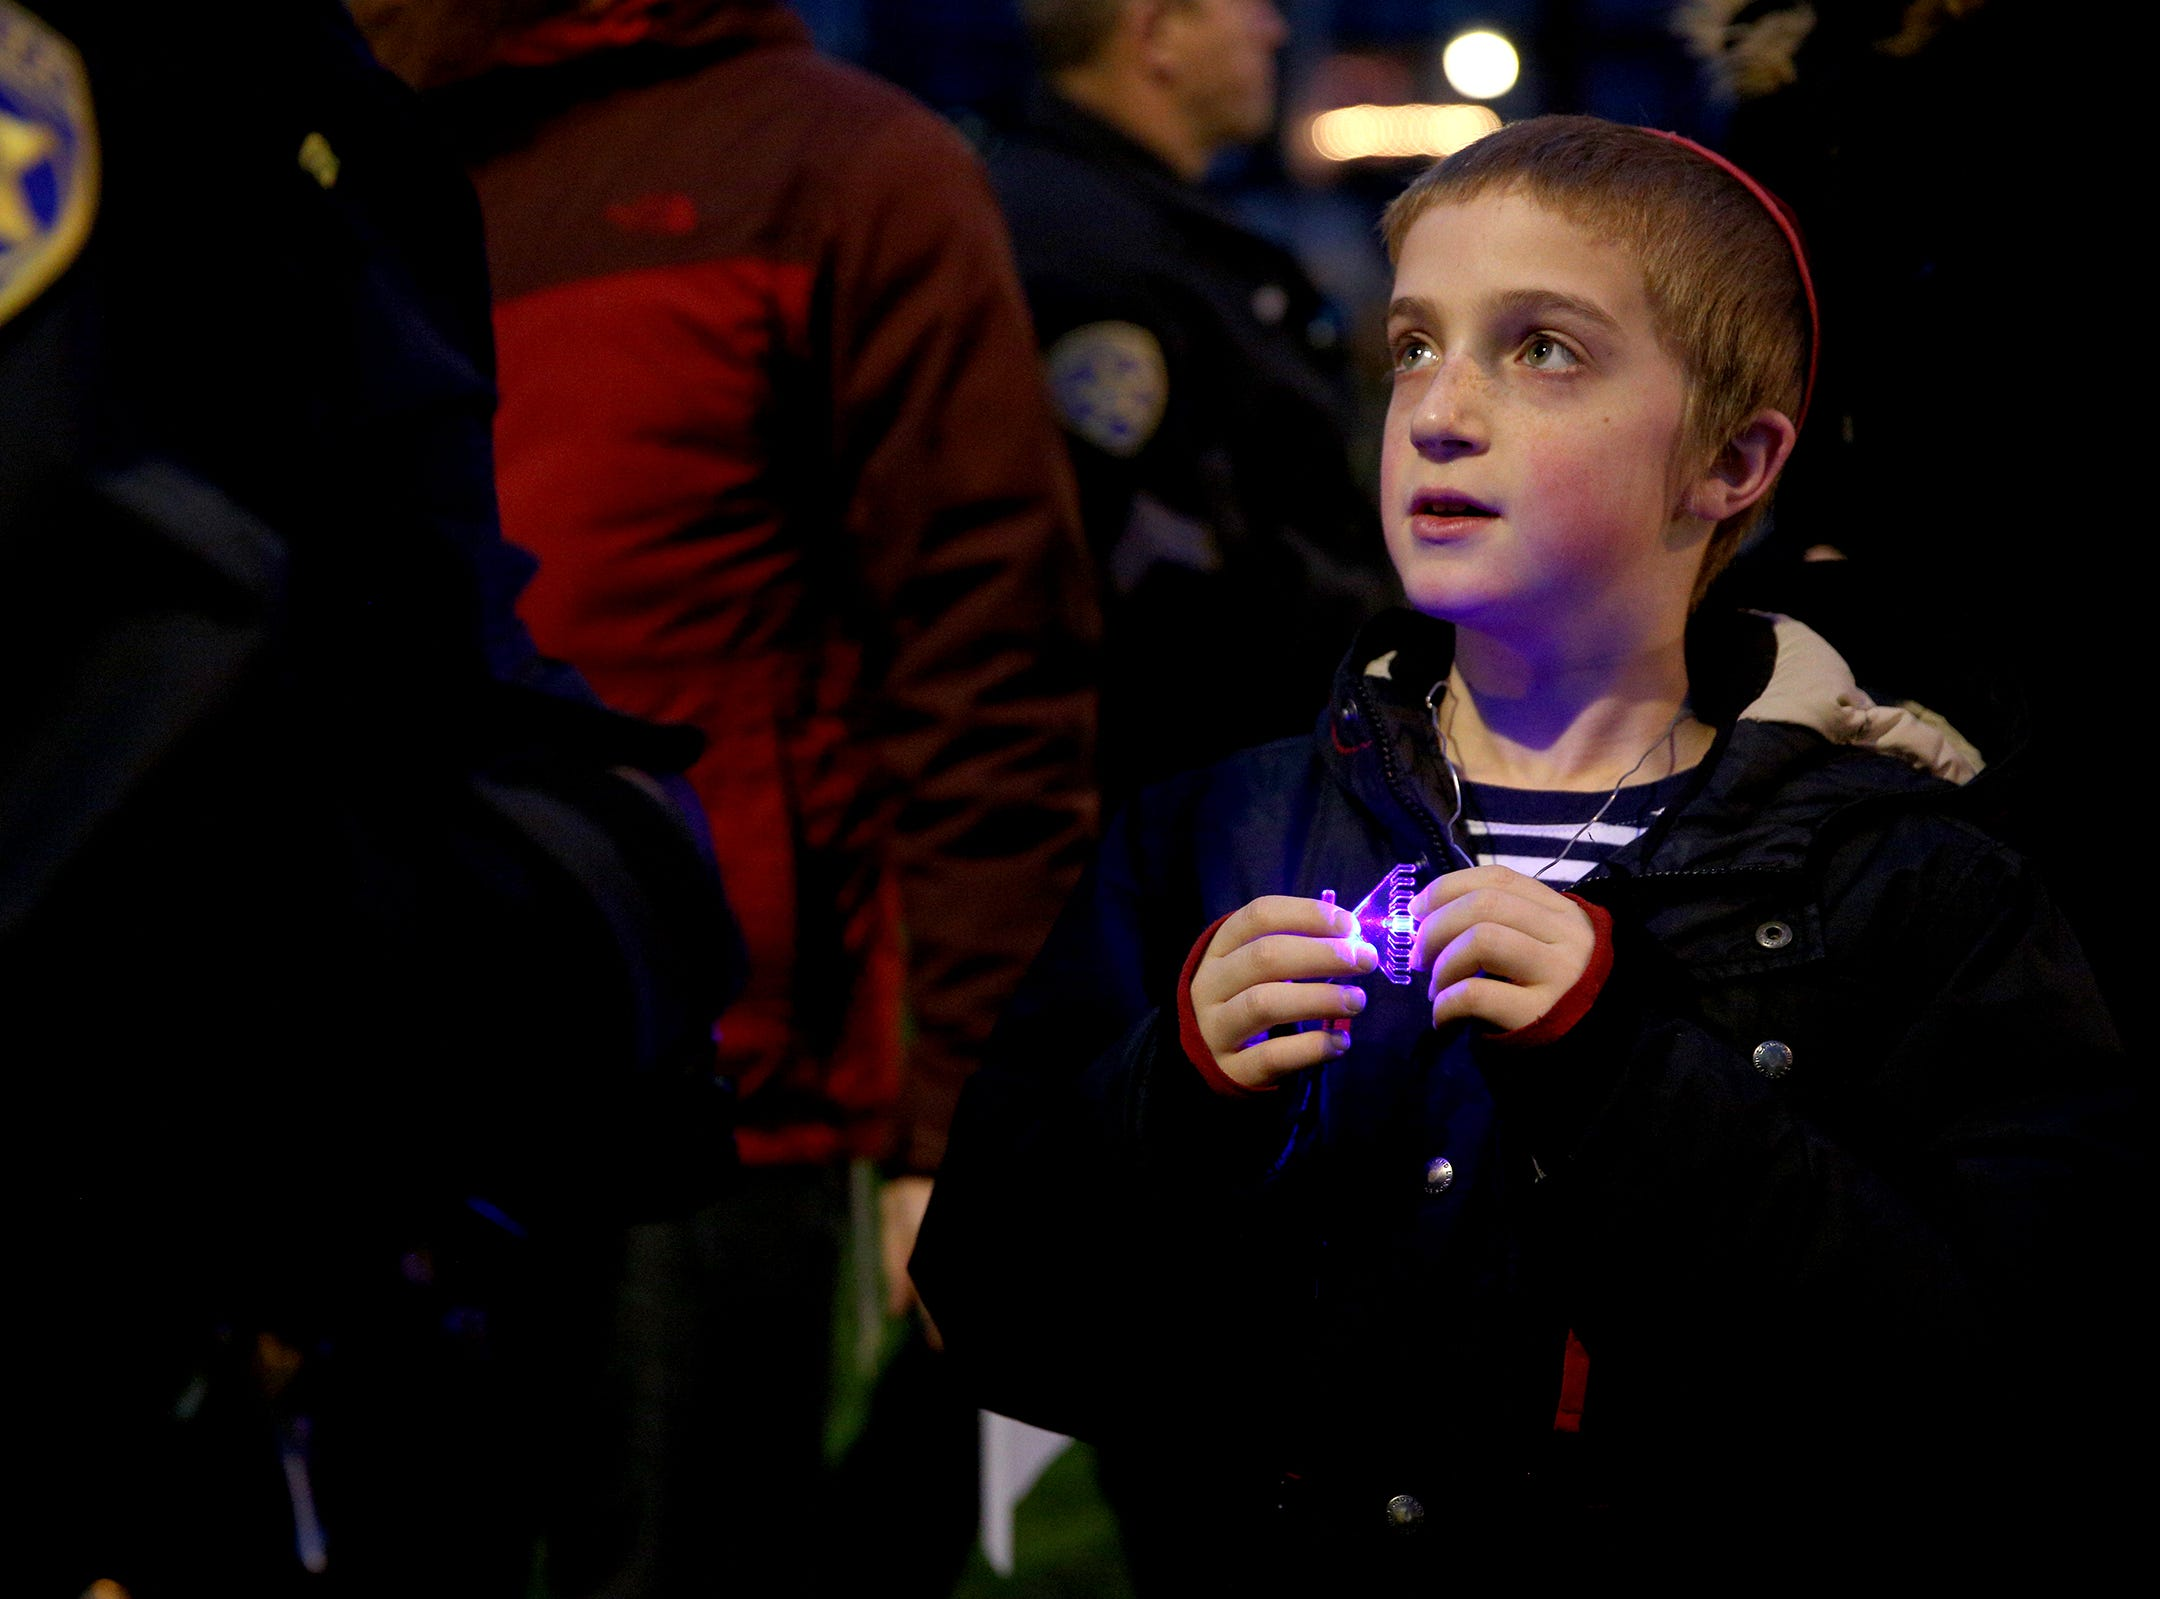 Sholom Perlstein, 10, holds a light up menorah necklace during a celebration on the first day of Hanukkah at Mirror Park in downtown Salem on Sunday, Dec. 2, 2018.